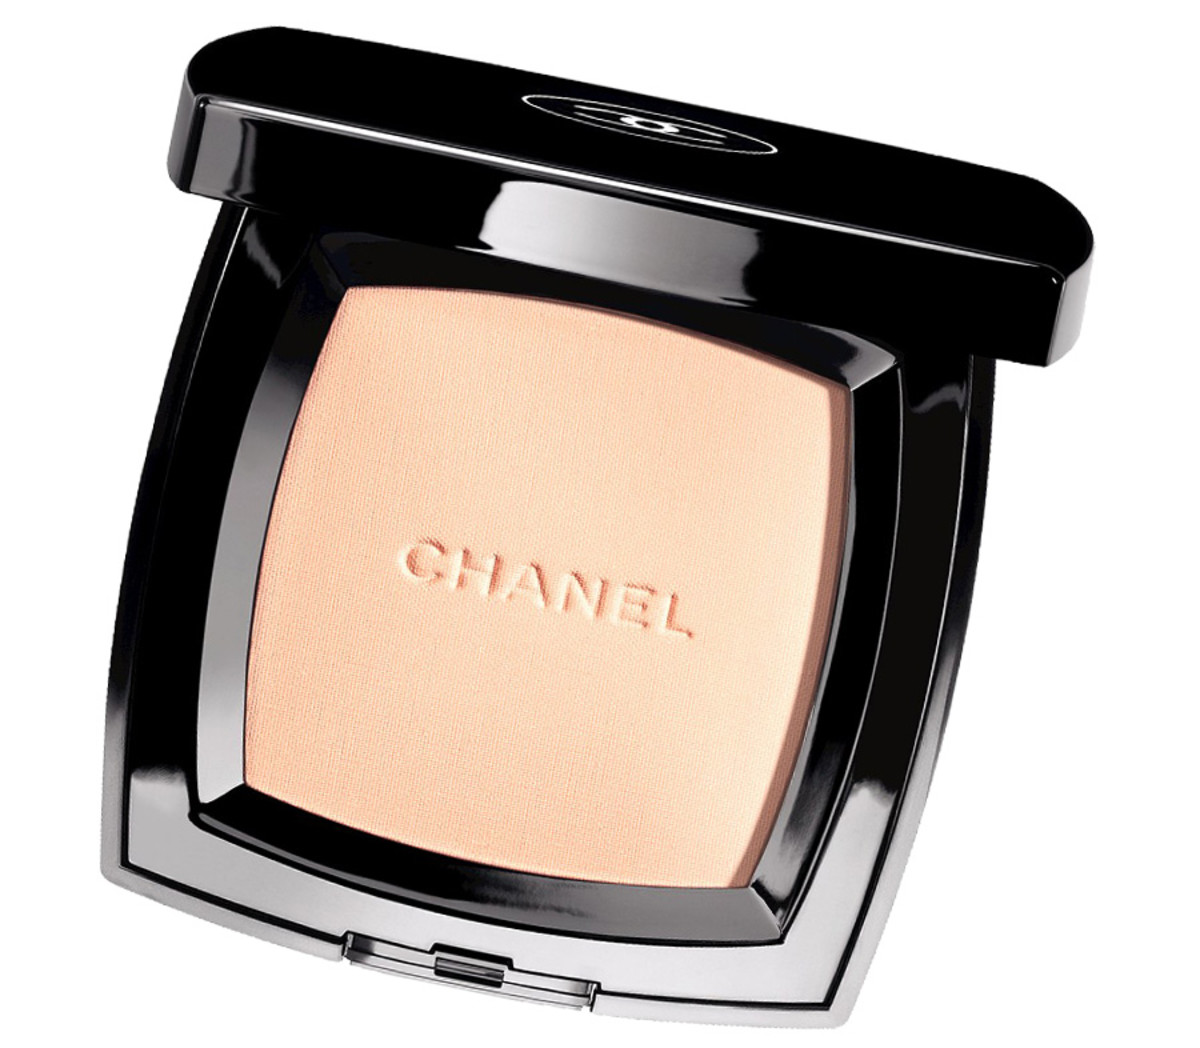 Chanel Spring 2014_Chanel Poudre Universelle Preface Translucent Powder_Light Peach_image edit by BEAUTYGEEKS imabeautygeek.com.jpg